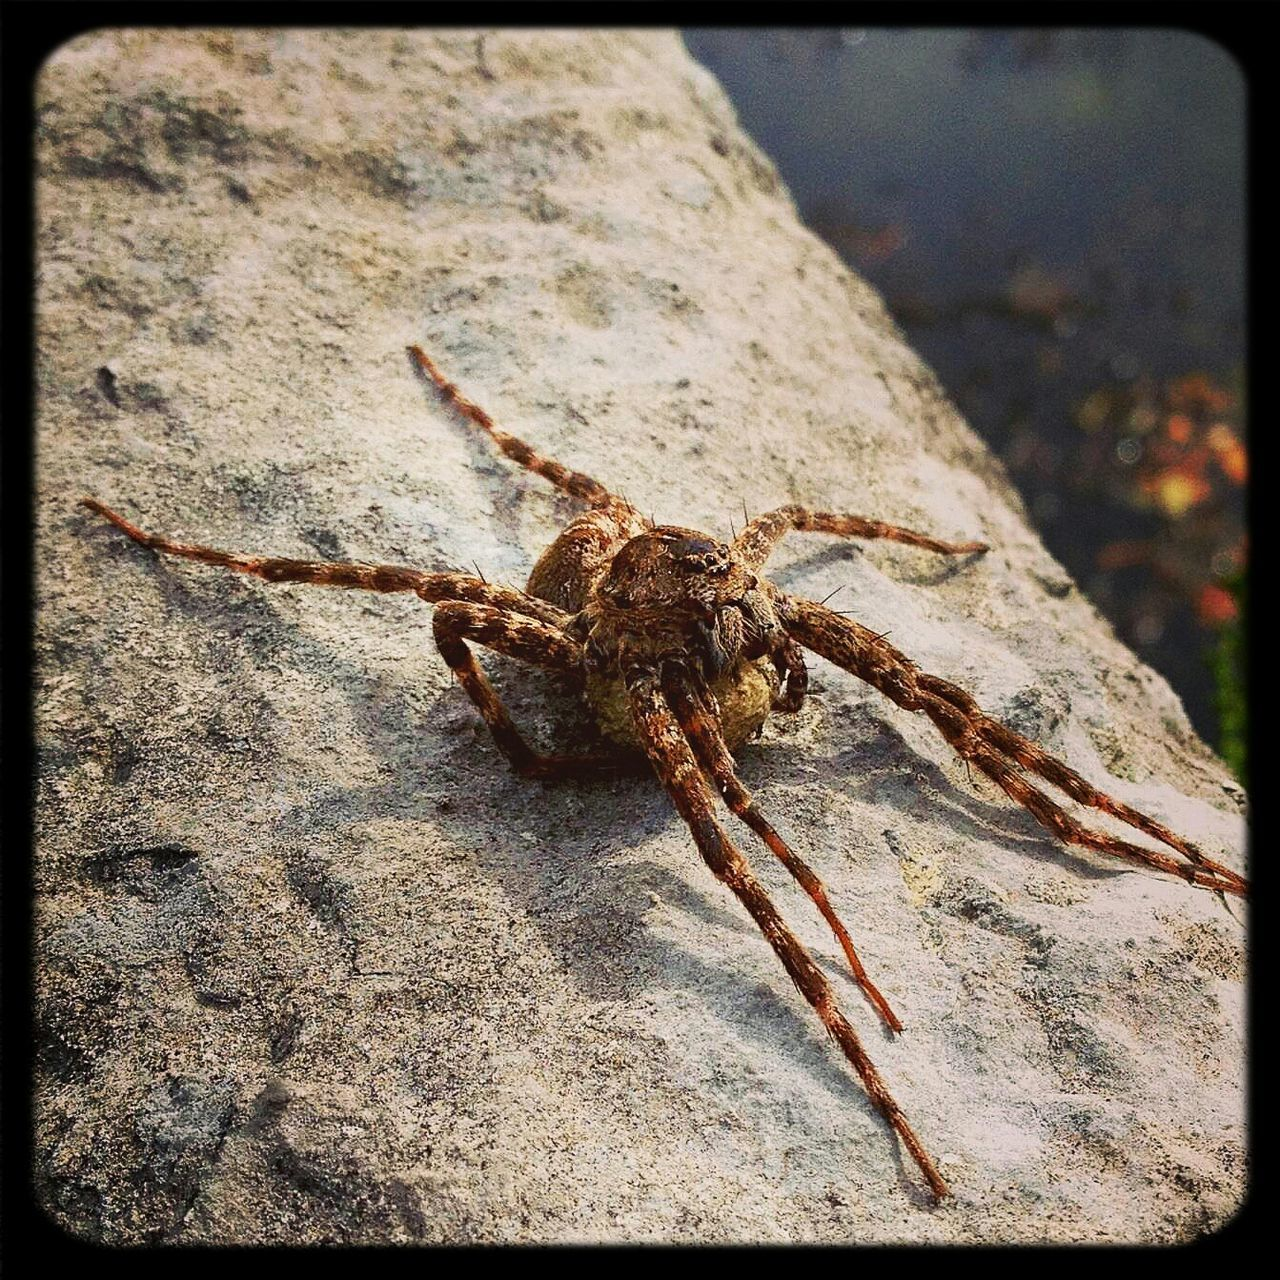 Close-Up Of A Spider On Rocky Surface